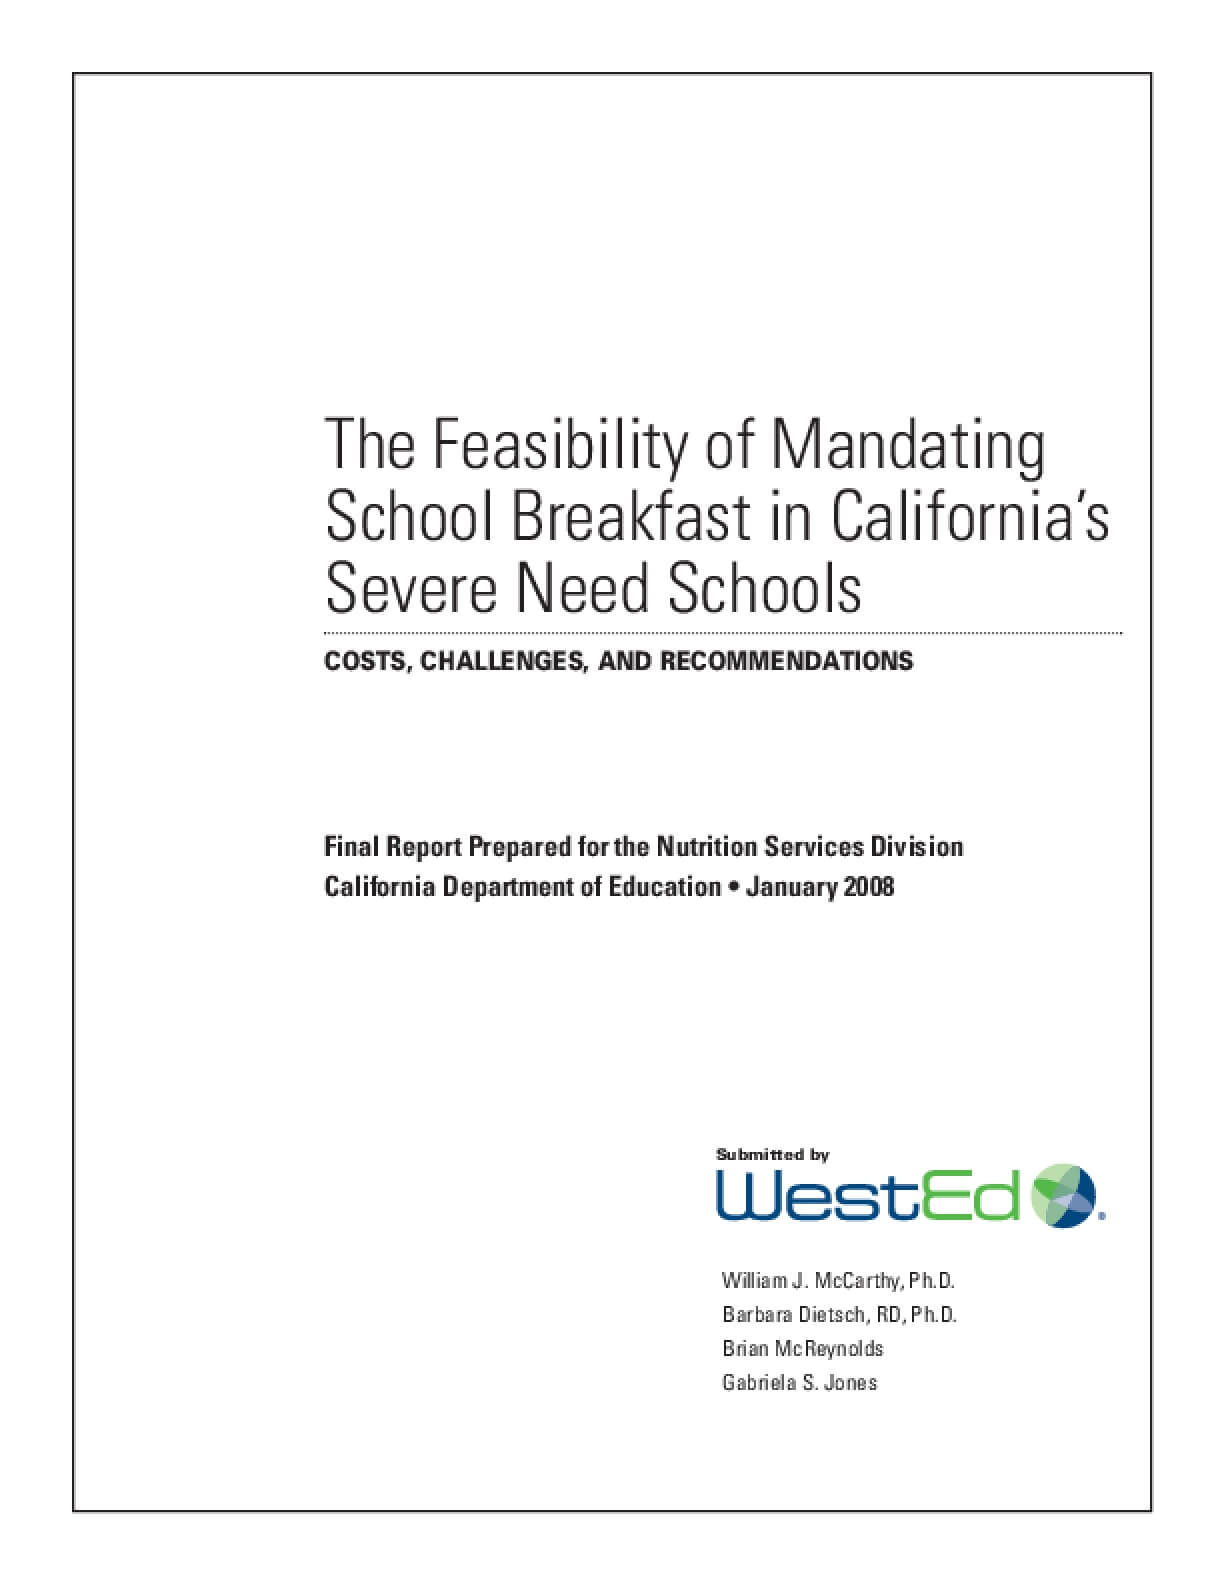 The Feasibility of Mandating School Breakfast in California's Severe Need Schools: Costs, Challenges, and Recommendations